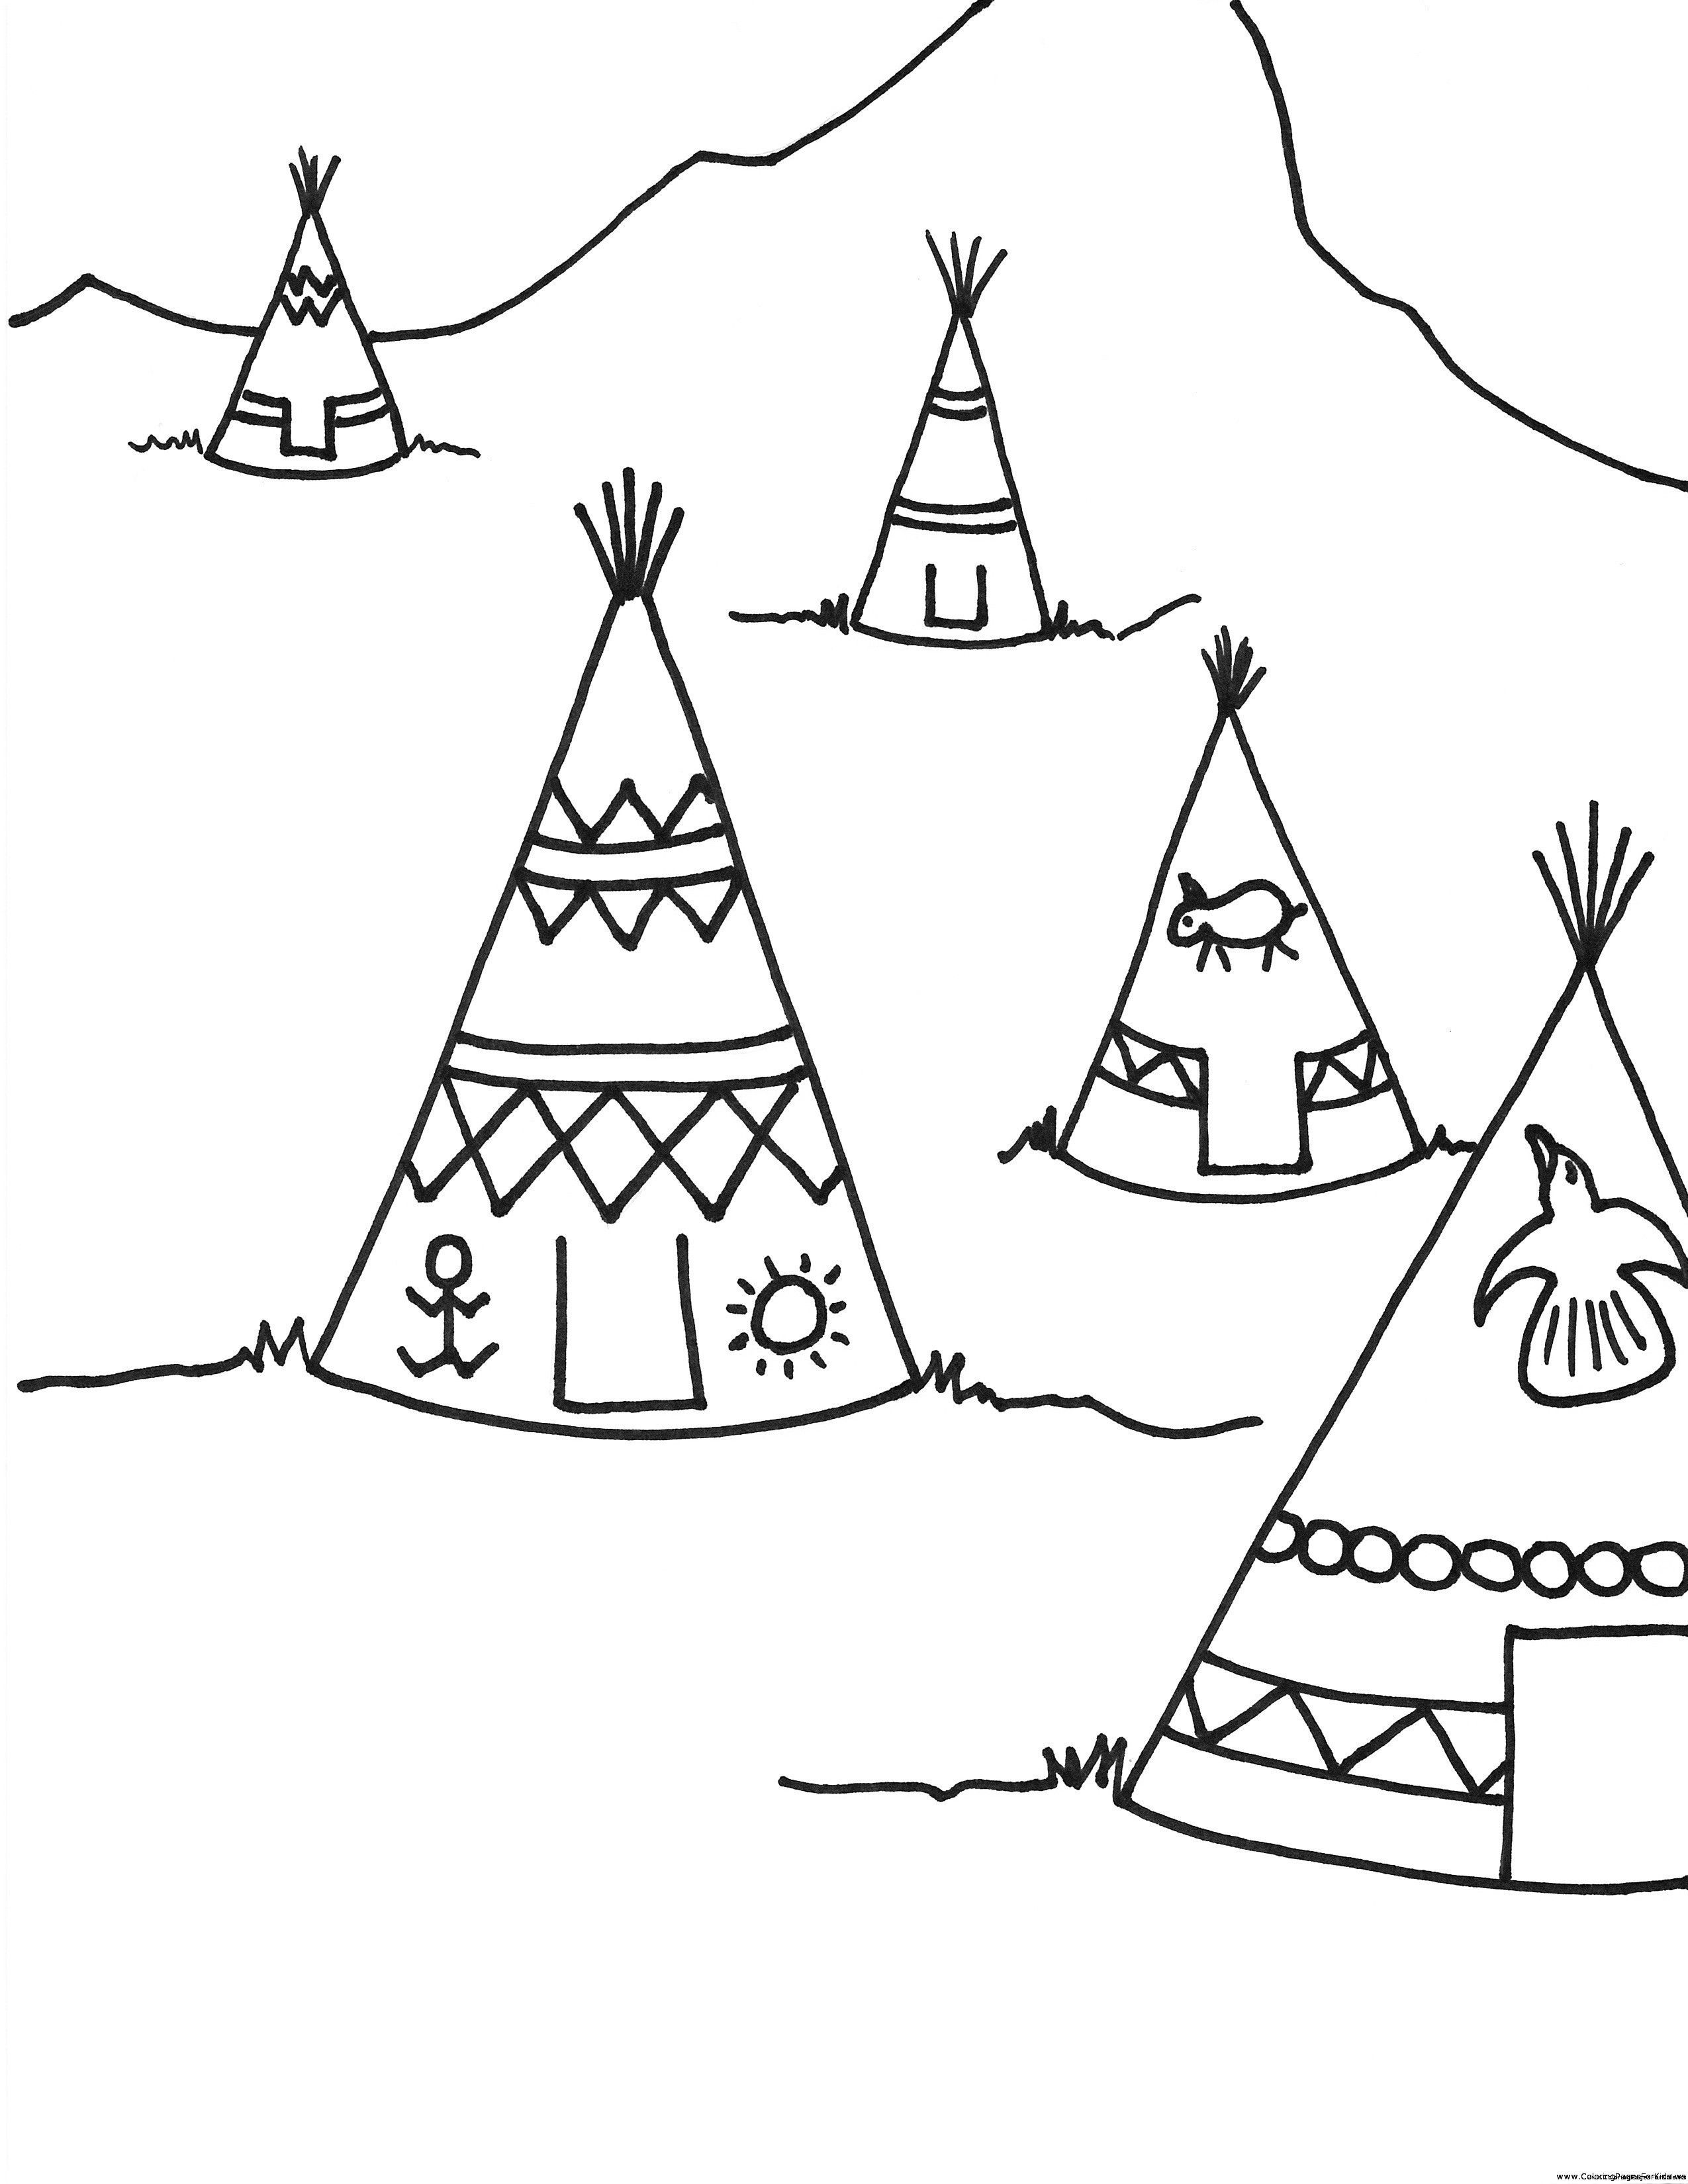 Teepee Coloring Page Printable Coloring Pages Thanksgiving Coloring Pages Coloring Pages For Kids